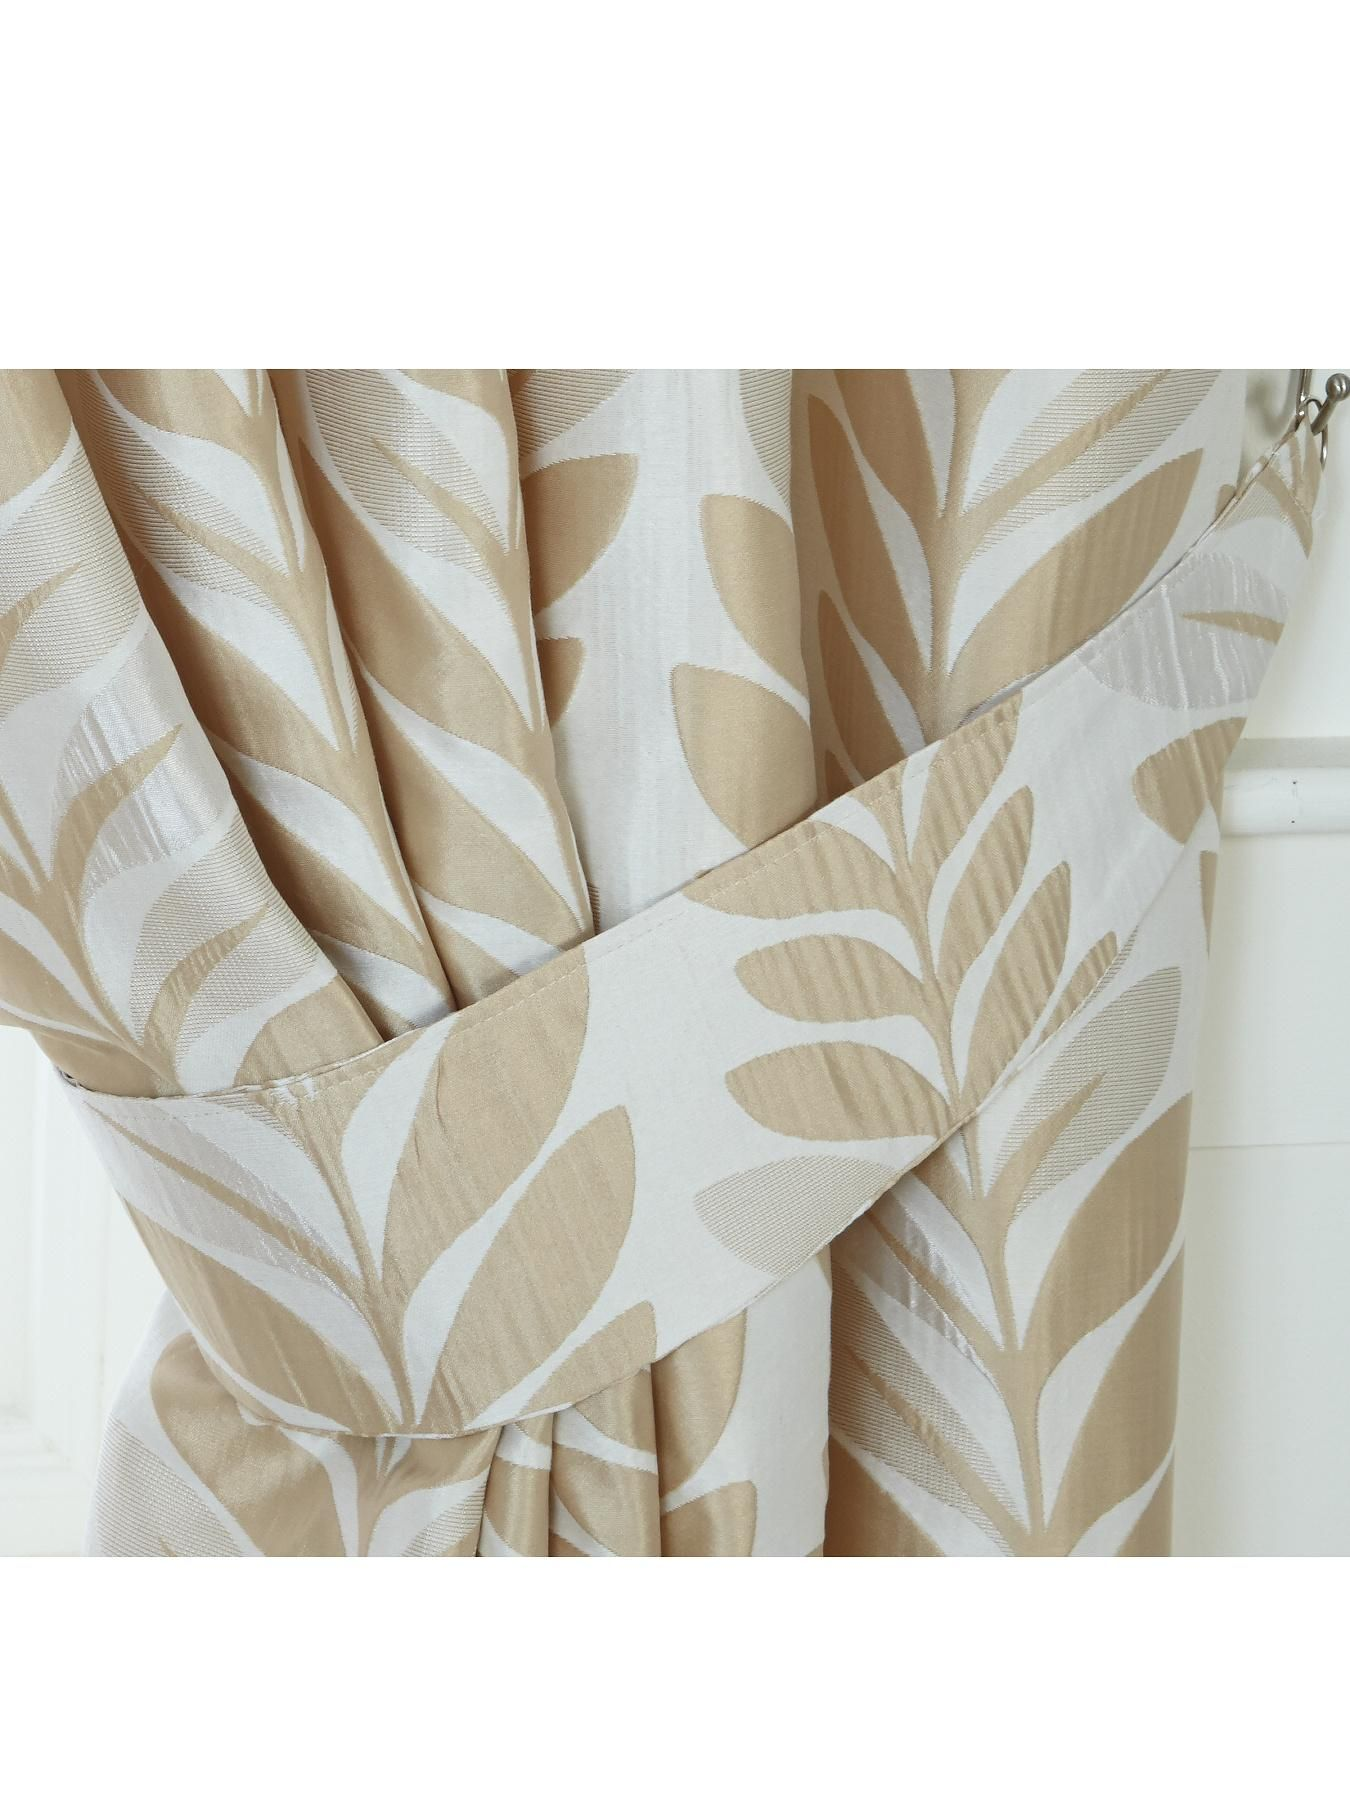 Palm Pair of Tie-Backs Ensure your Palm curtains (see item number 4XMUD) look as stunning in the day as they do at night with these matching tie-backs. They flaunt a woven jacquard palm leaf design in a choice of duck egg, gold or natural to perfectly co-ordinate with your room.Spread the style with with matching cushion covers (4XMUM), available separately.Useful info: Palm Tie-BacksPairWoven jacquard palm leaf design3 colours choicesCo-ordinating items available separatelyColours: Duck…